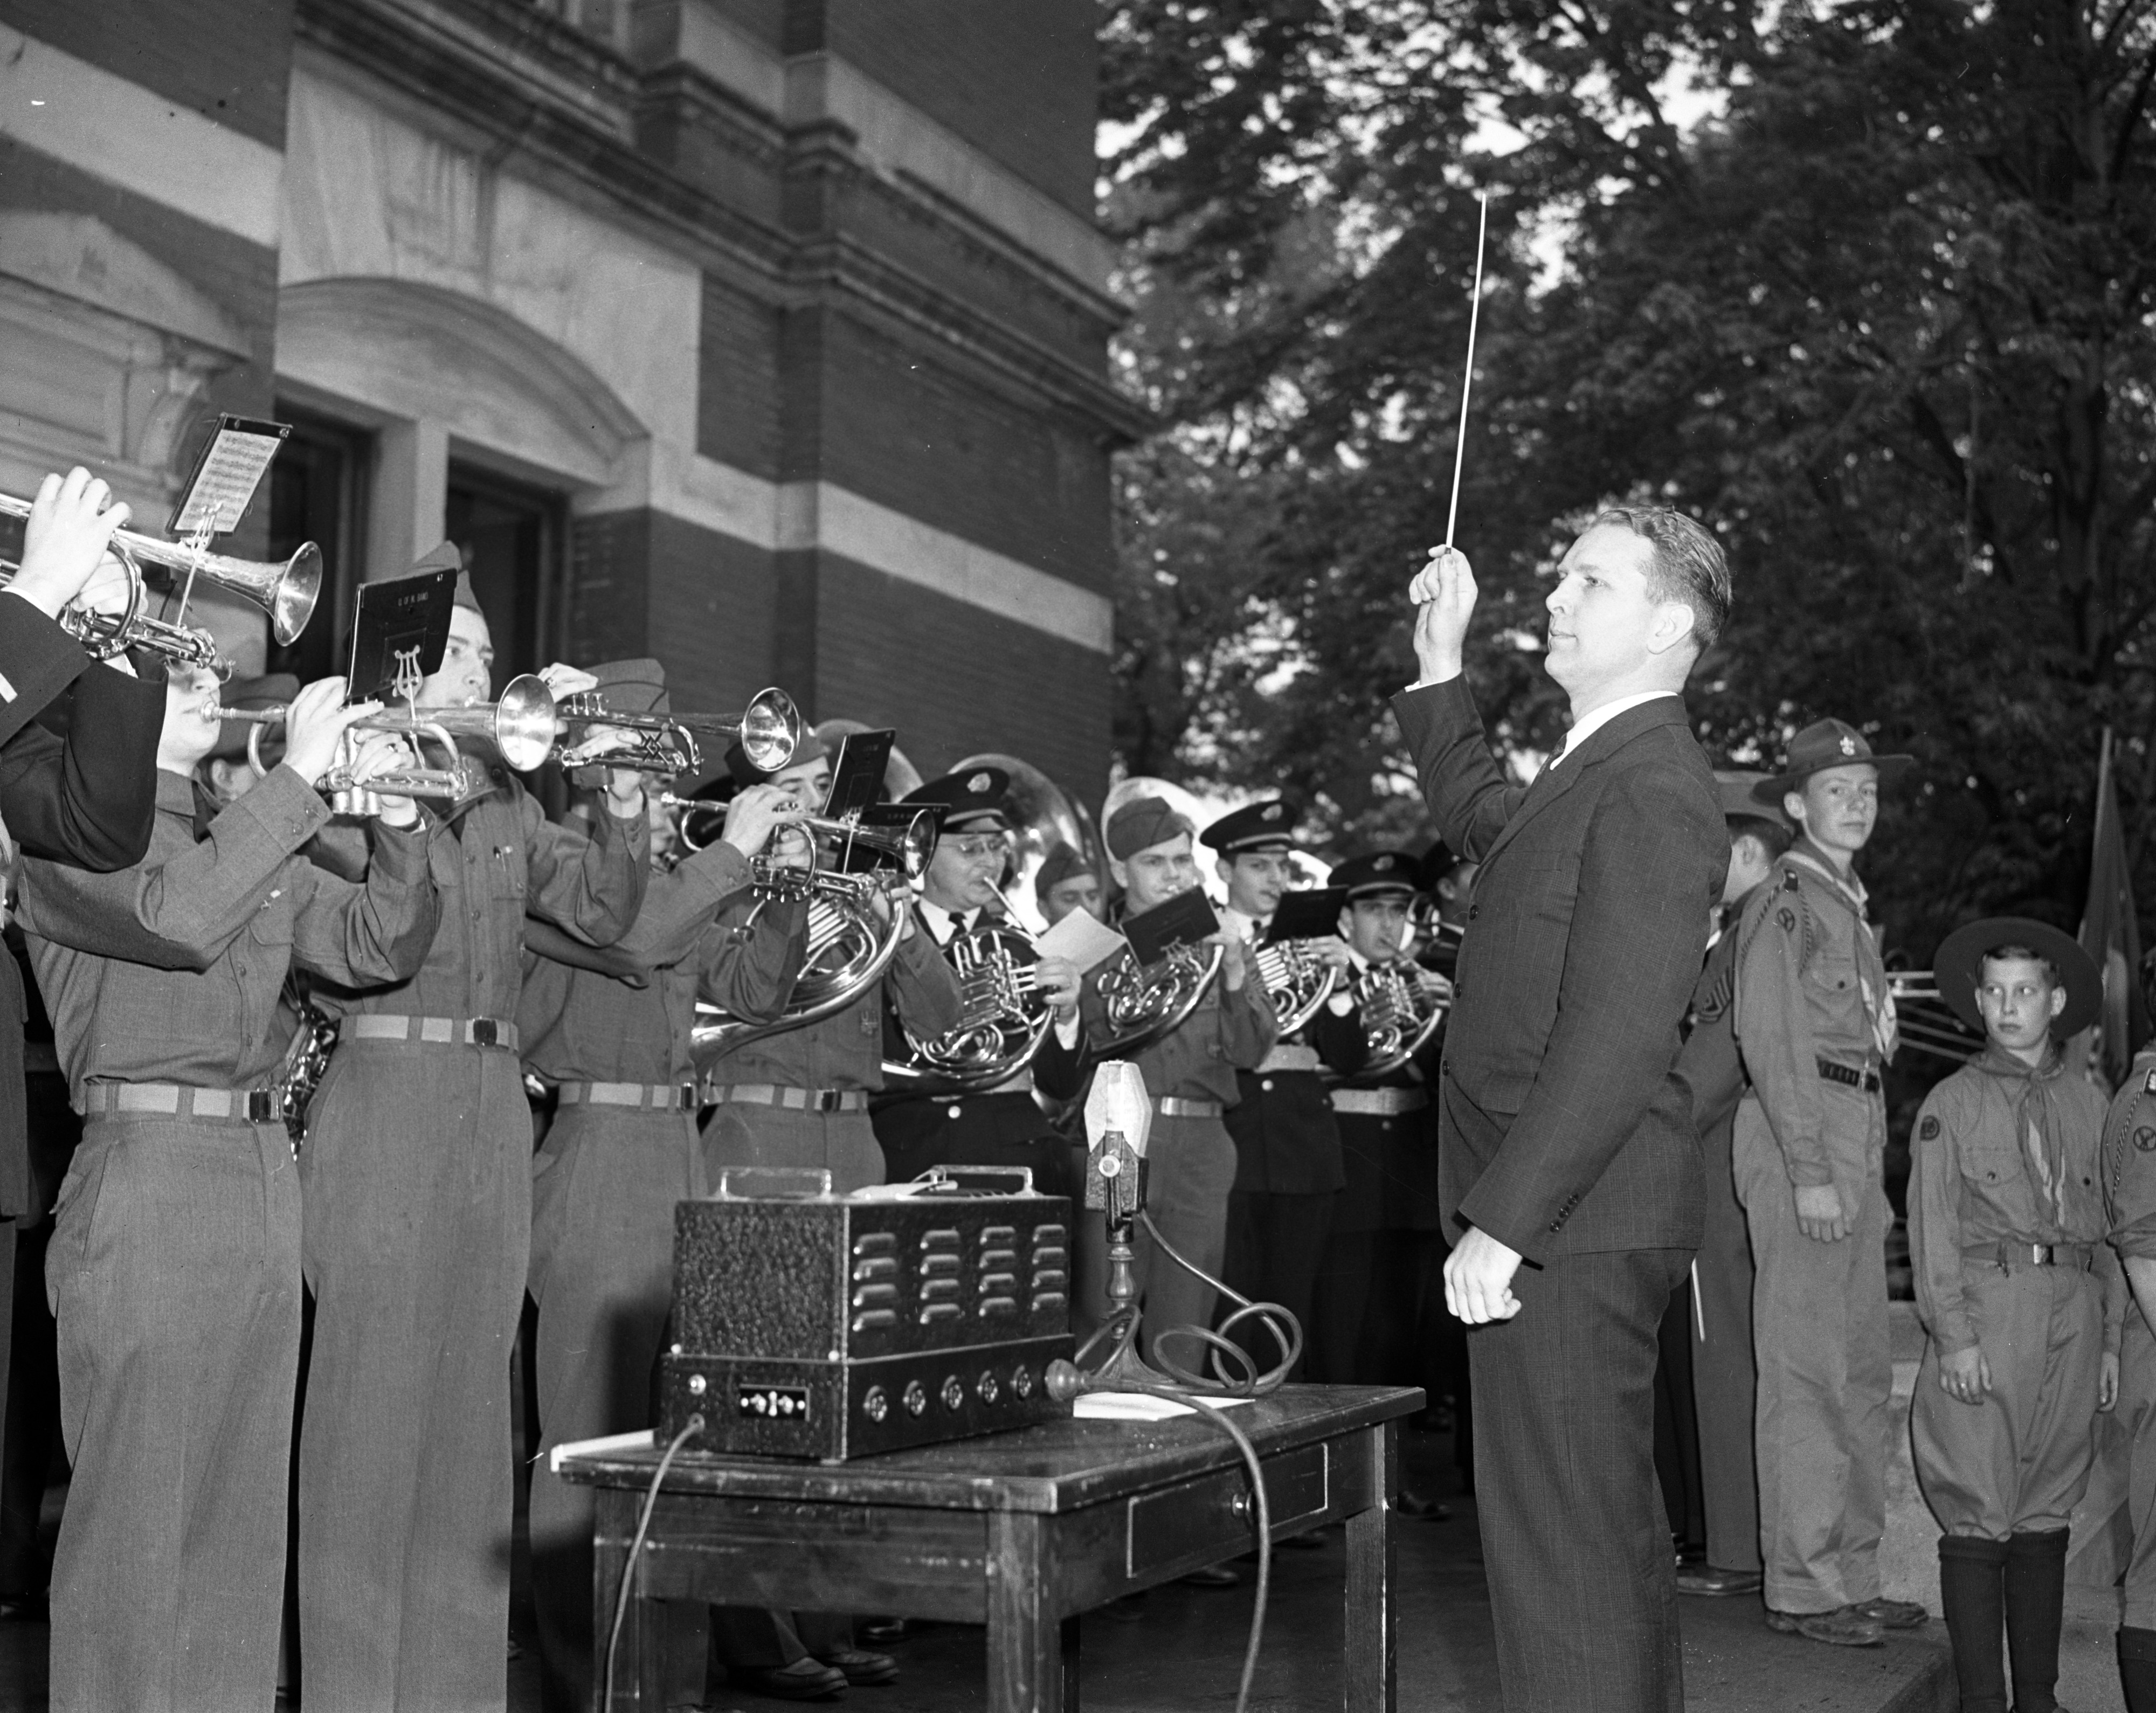 Russell S. Howland conducts the University ROTC and marching bands as part of the send-off for draftees at Courthouse Square, May 13, 1942 image